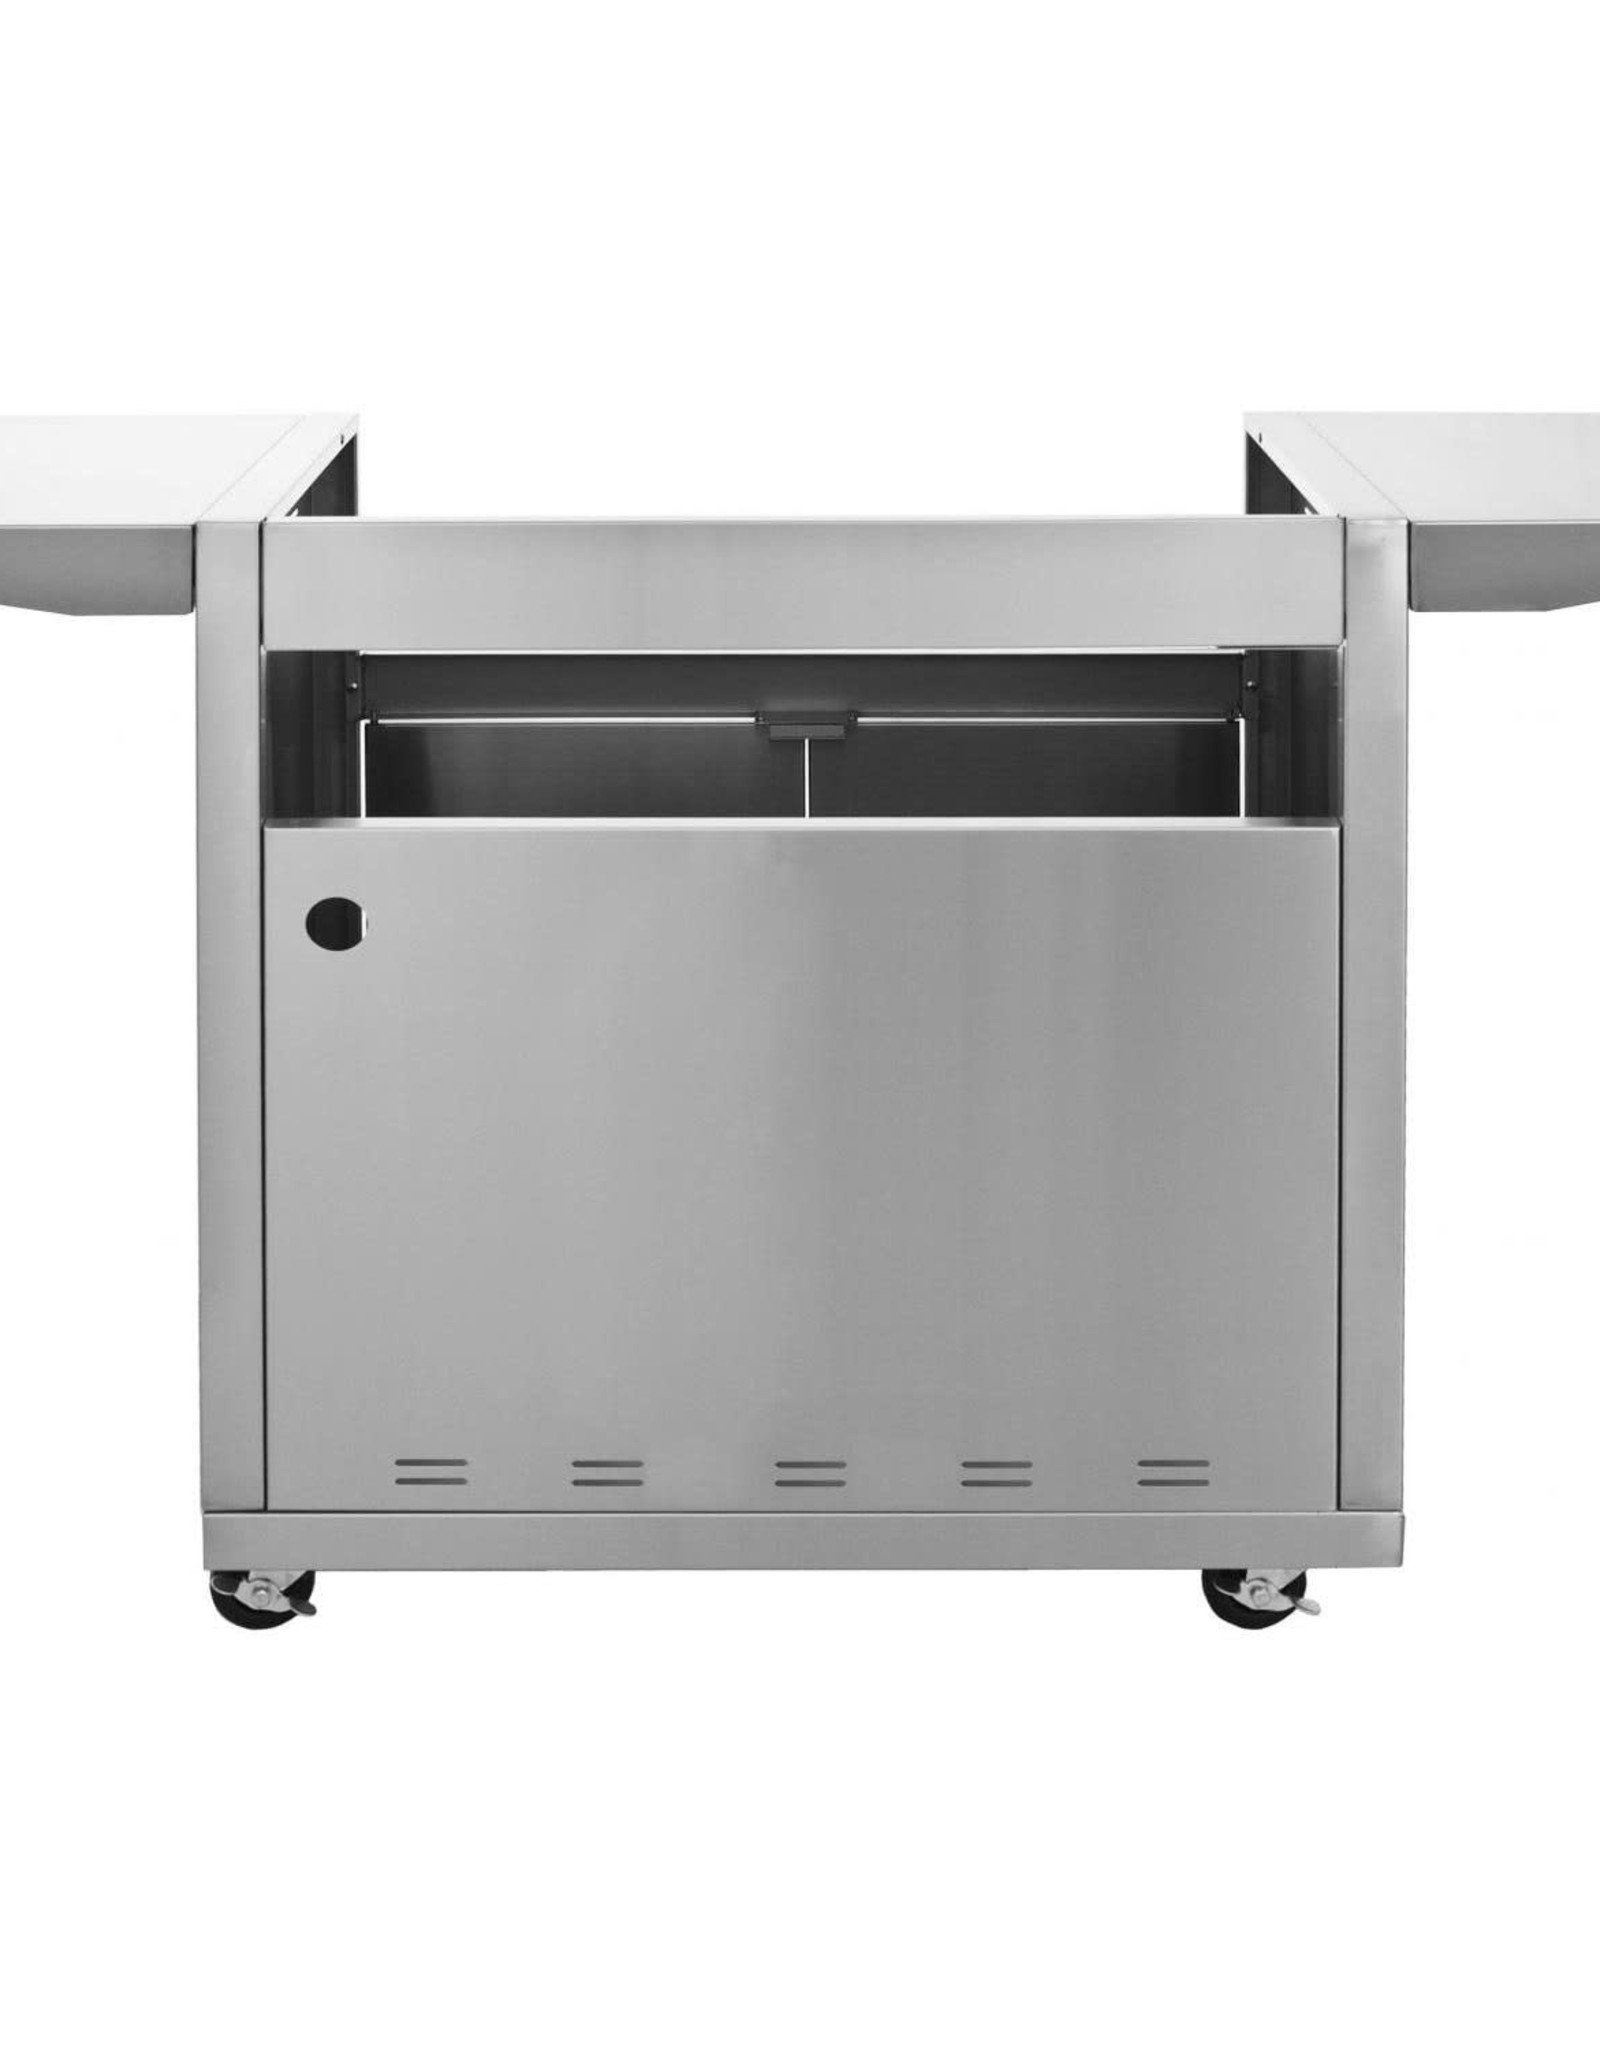 Blaze Outdoor Products Blaze Grill Cart For 32-Inch 4-Burner Gas Grill - BLZ-4-CART